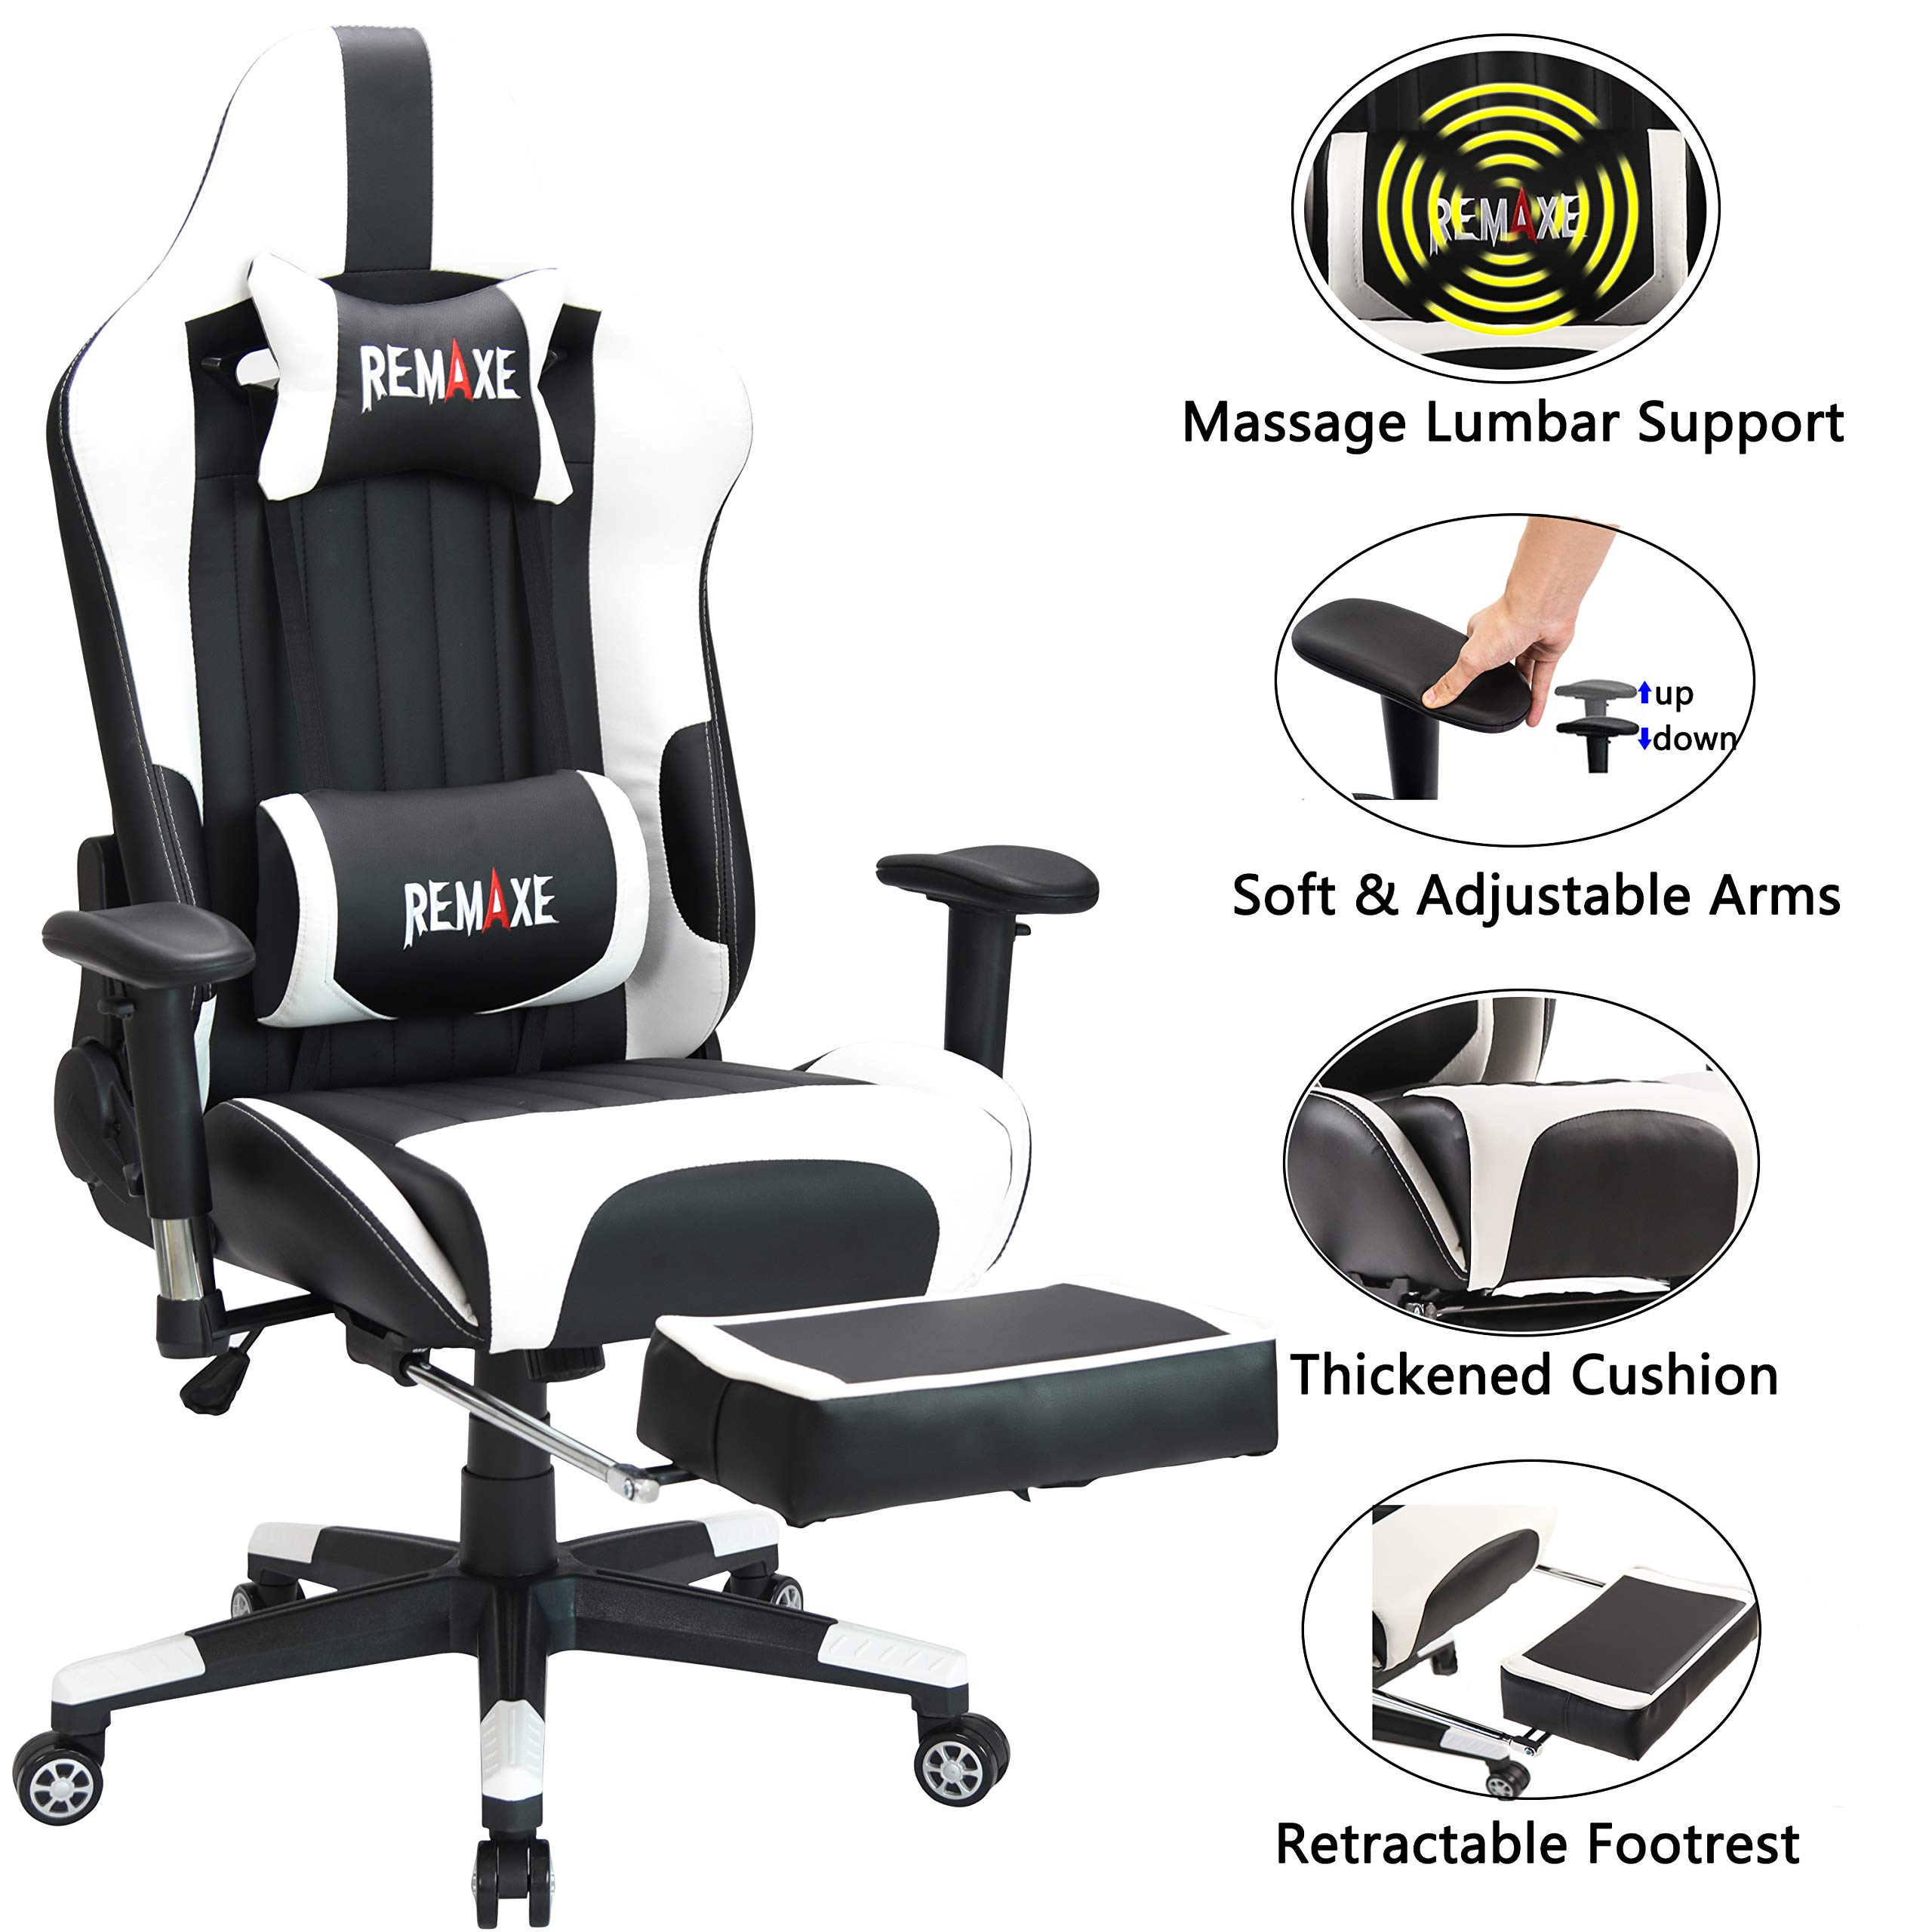 Large Size Gaming Chair High-Back PC Racing Chair Headrest Lumbar Massager Cushion Ergonomic Swivel PC Racing Chair with Retractable Footrest,PU Leather Executive Home Computer Chair(Black/White) by Remaxe